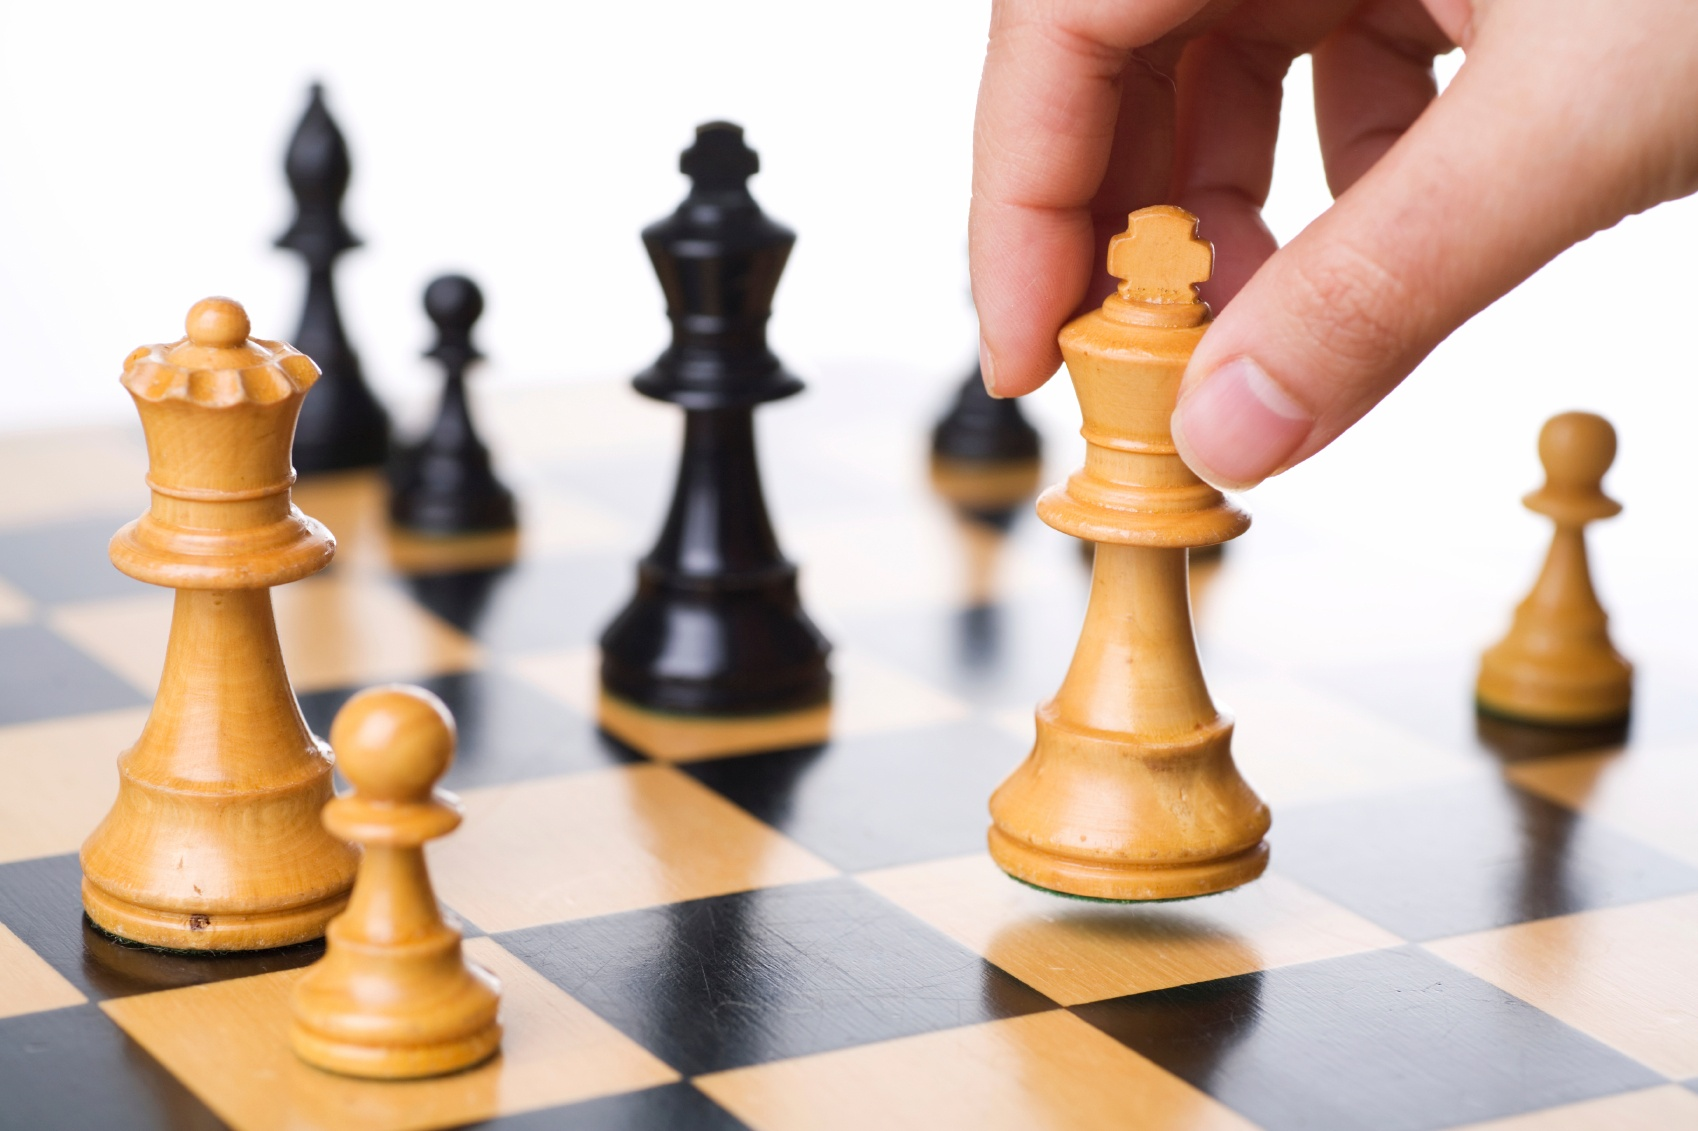 Chess is challenging and has many moves just like relationships